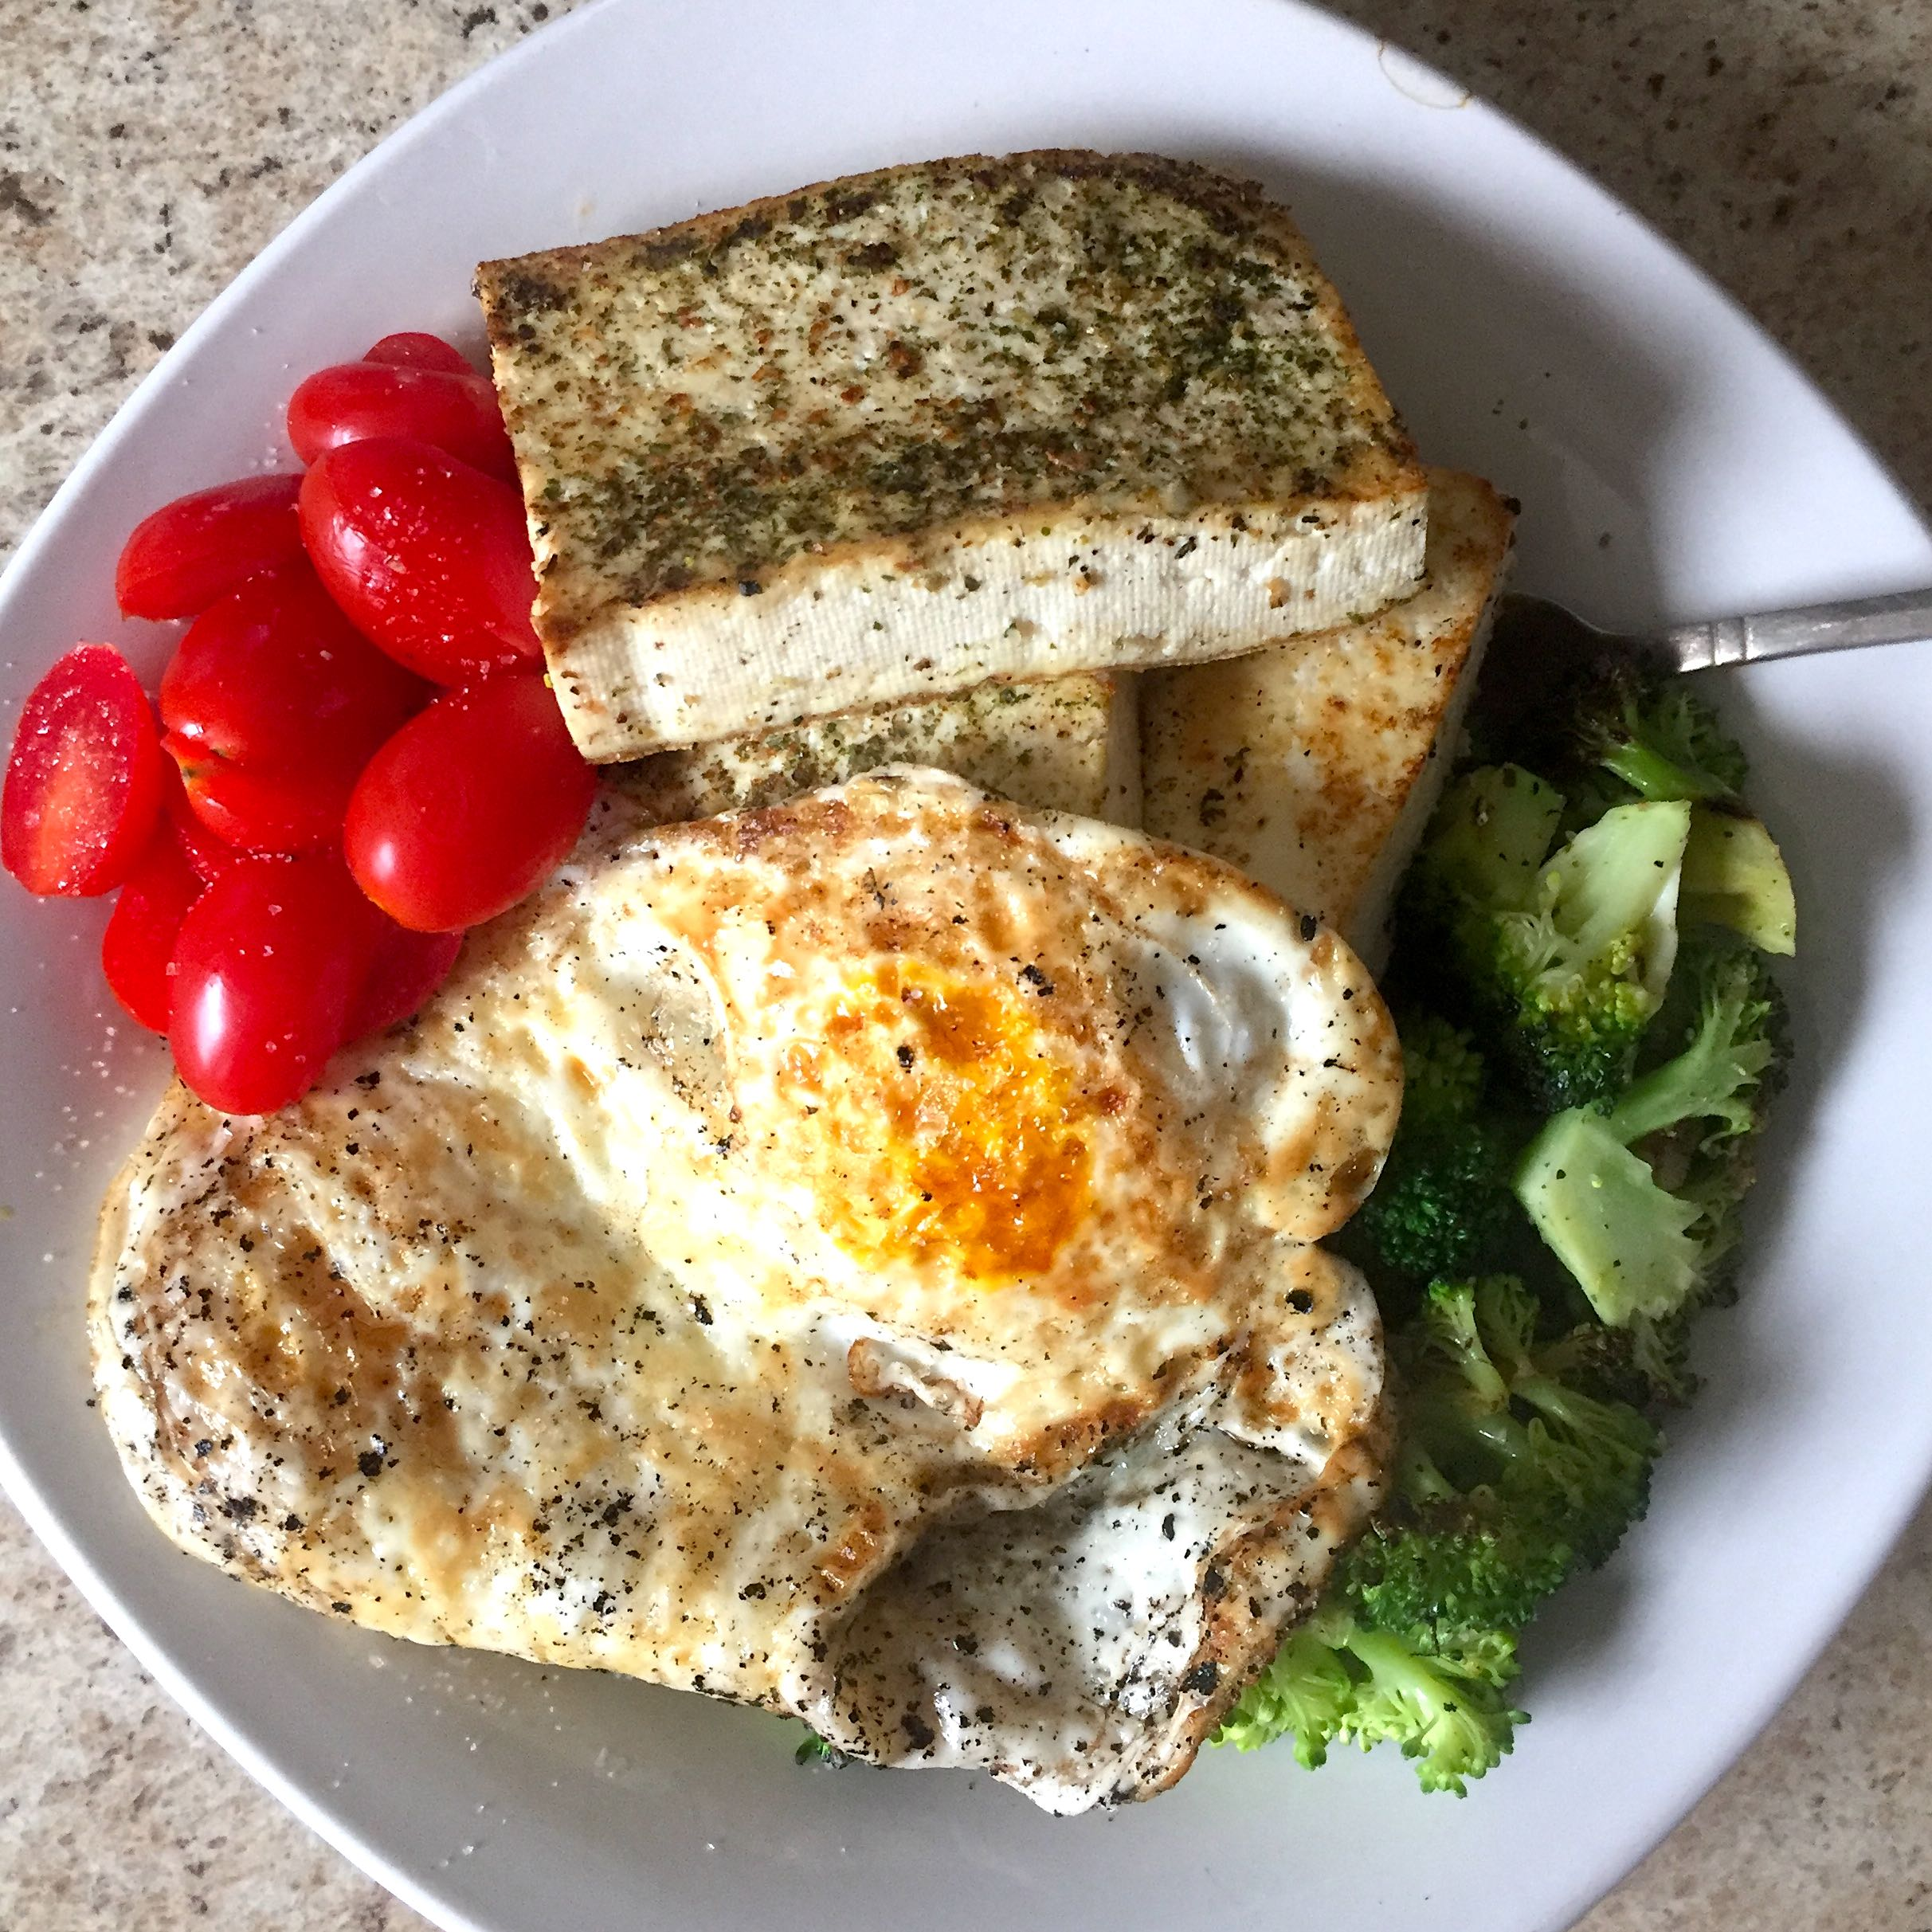 Simple Lunch of Eggs, Tofu, Broccoli, and Tomatoes